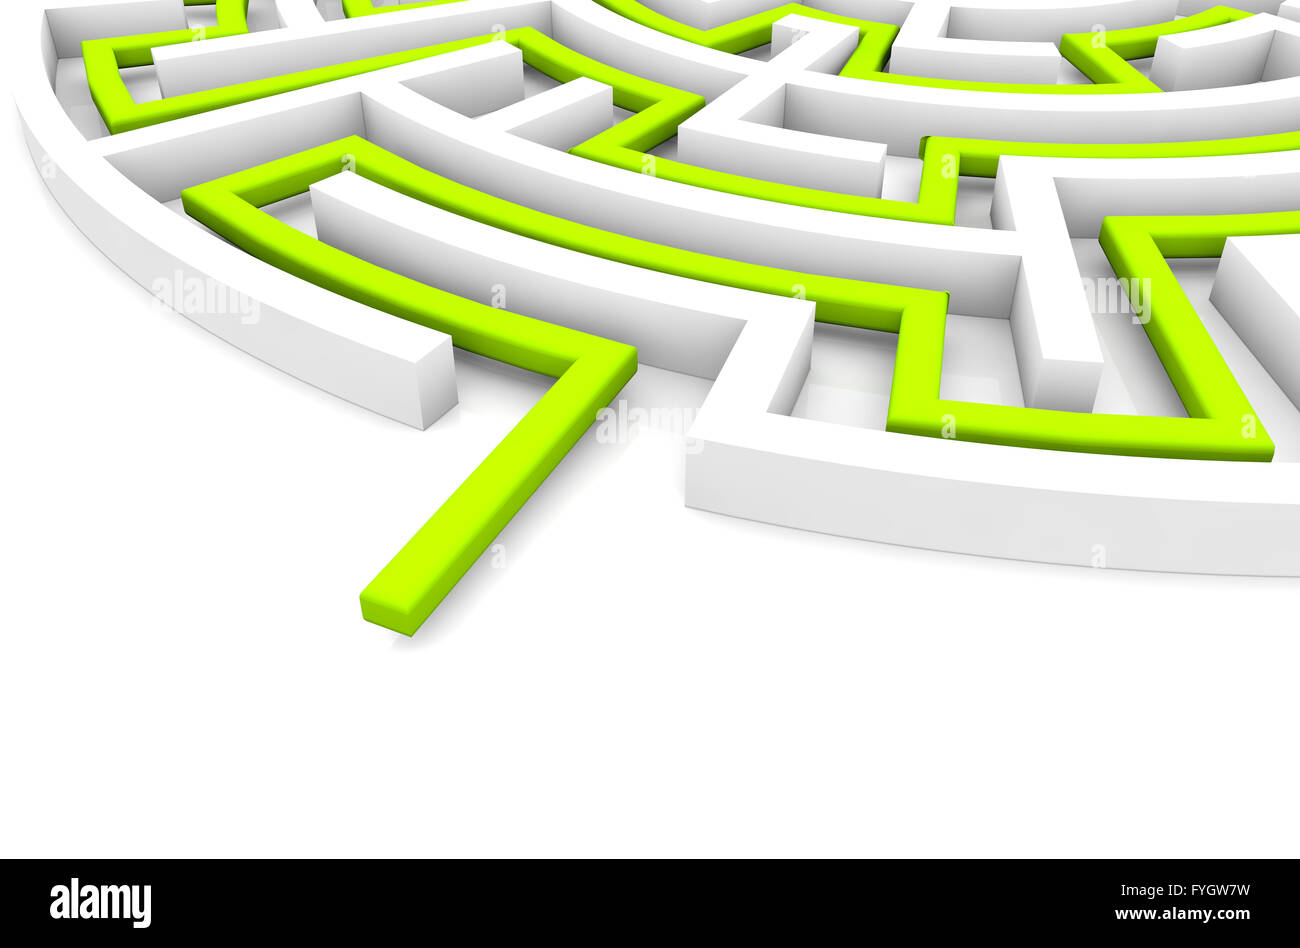 strategy concept: render of a maze with solution in green - Stock Image